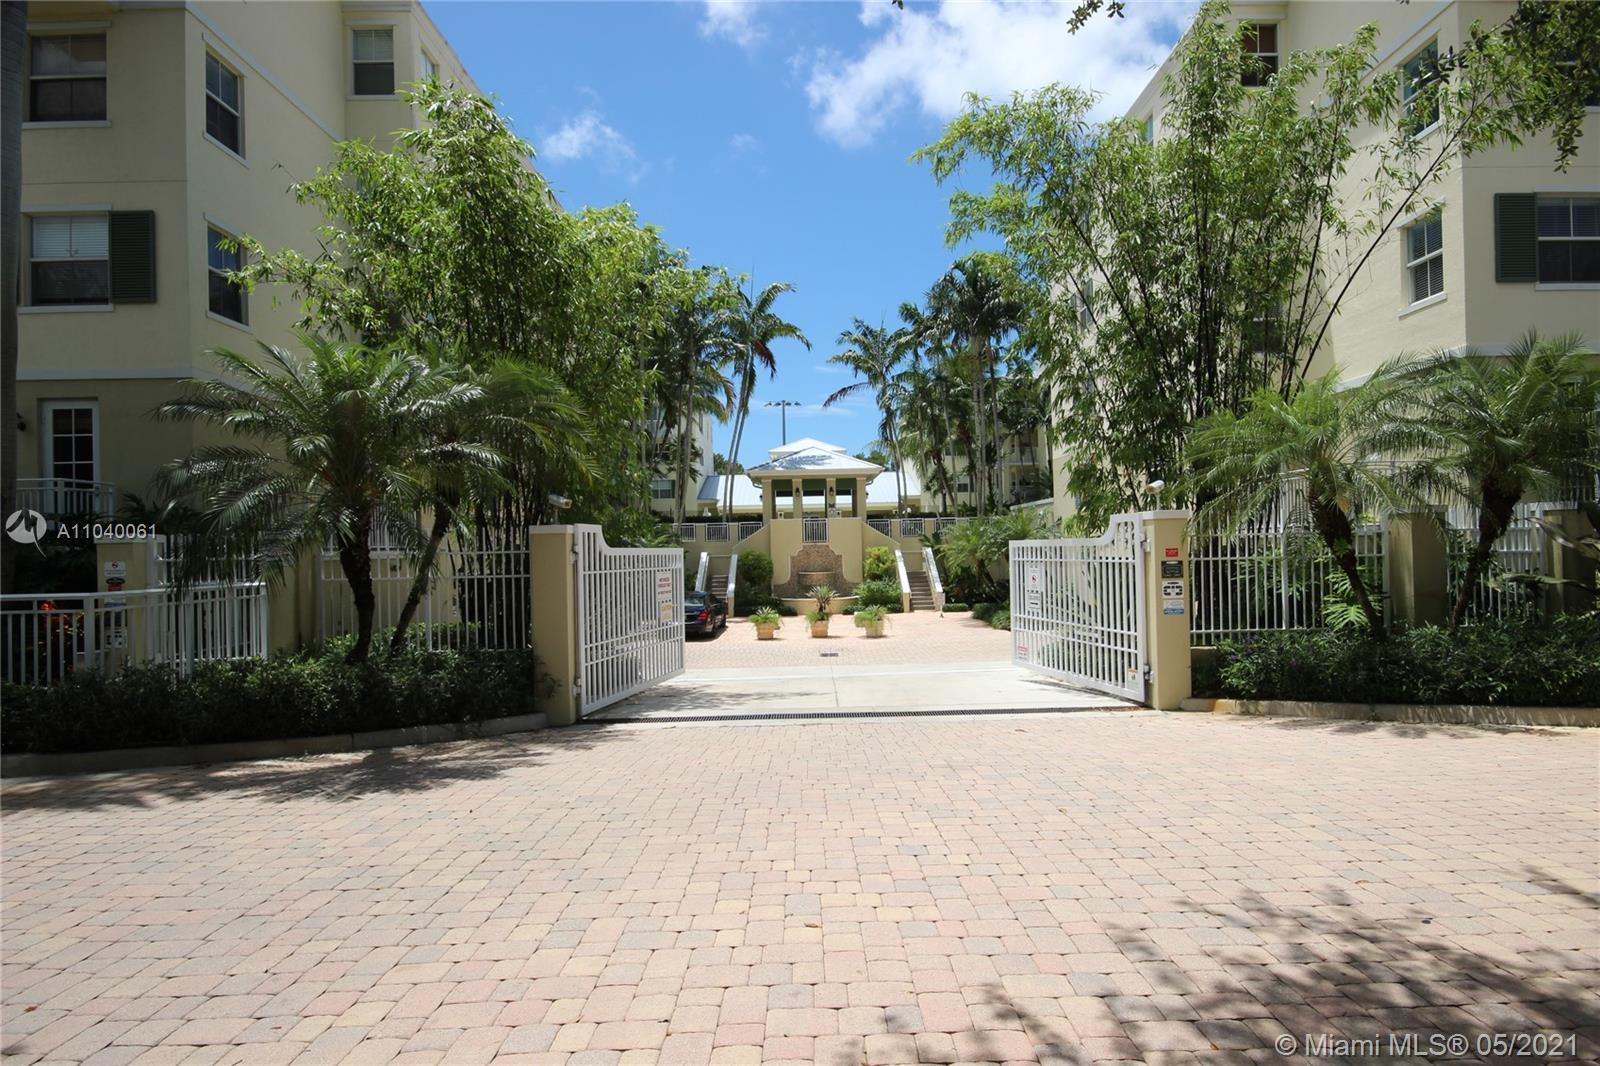 Ideally located one-story 3 bedroom 2.5 bathroom unit at The Reserve of Pinecrest.  All tiled floors including high-end appliances, jacuzzi bathtub, custom closets, crown-molding, in-ceiling speakers and wired for private alarm system.  2 covered parking garage spaces and a great floor plan.  Very large private patio balcony.  Don't miss this opportunity!